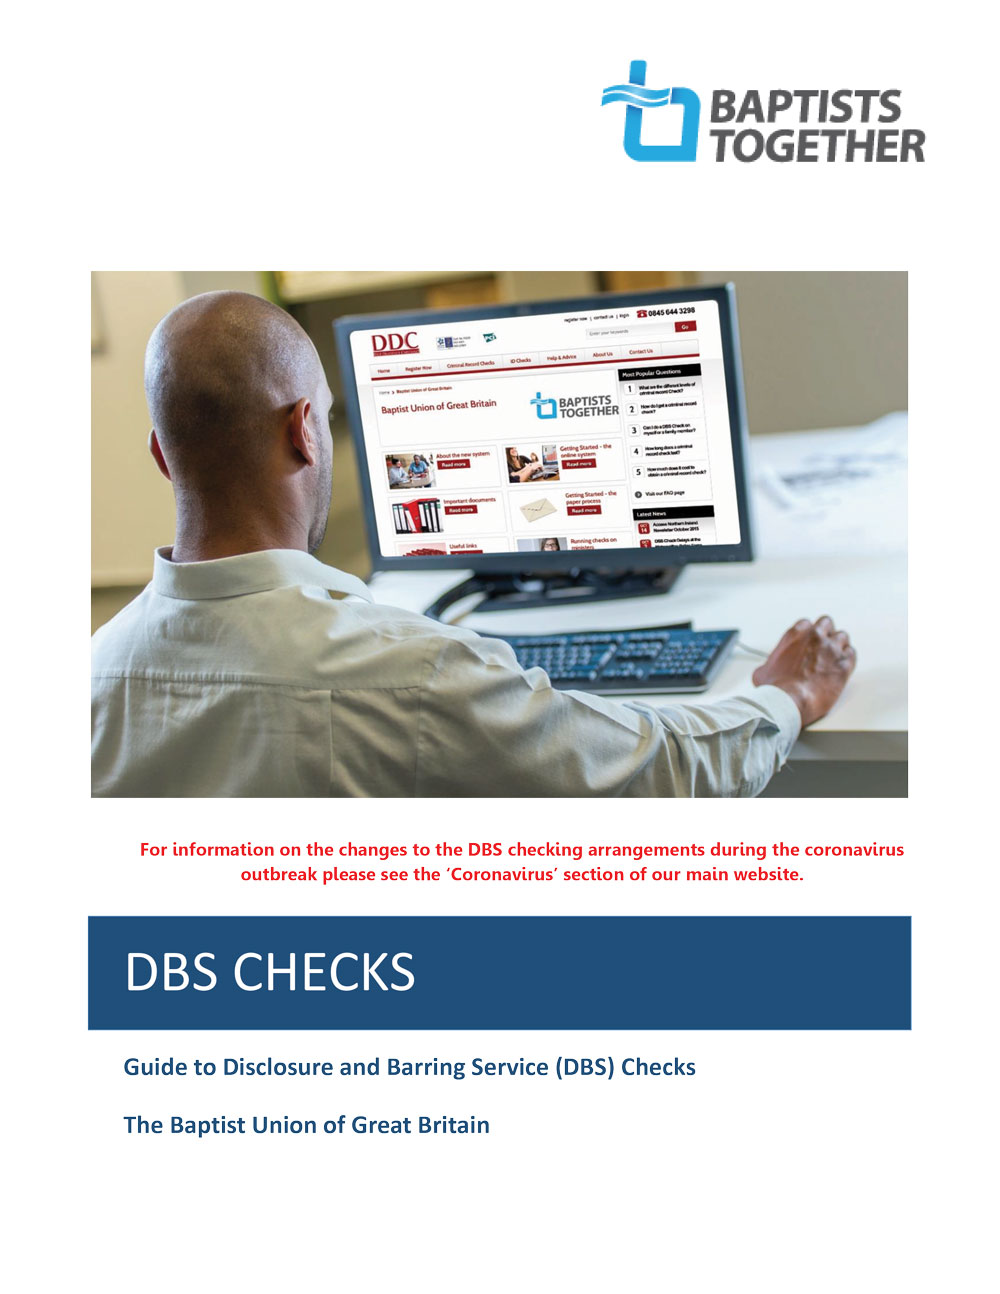 BUGB DBS Check Guide 30March20